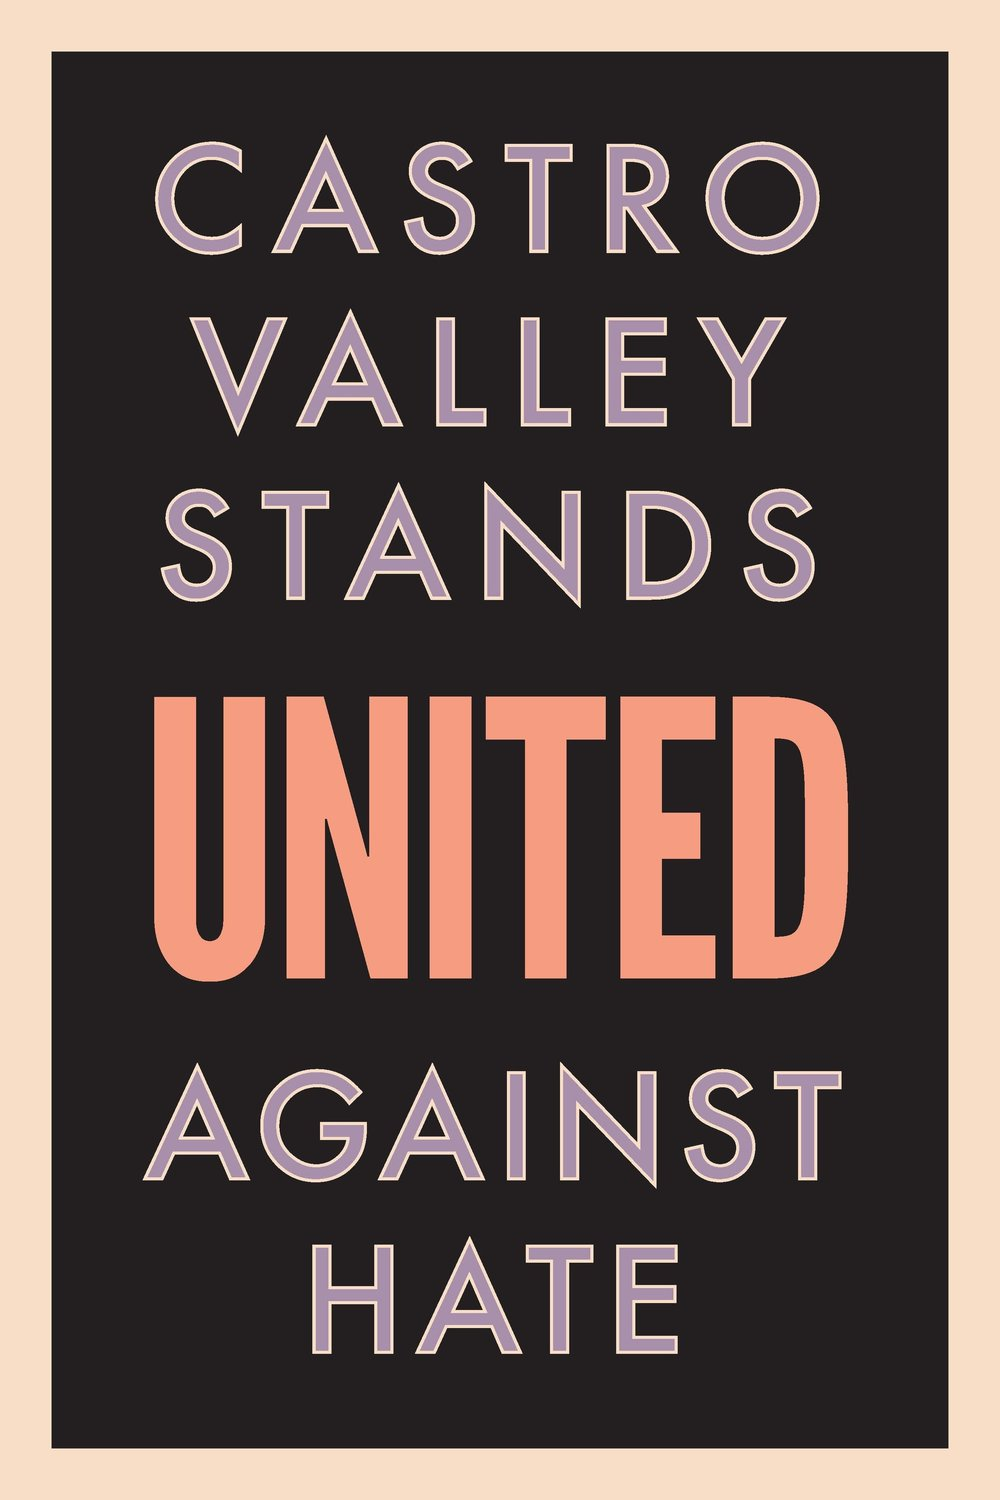 CastroValleyUnited_19x12.5.jpg